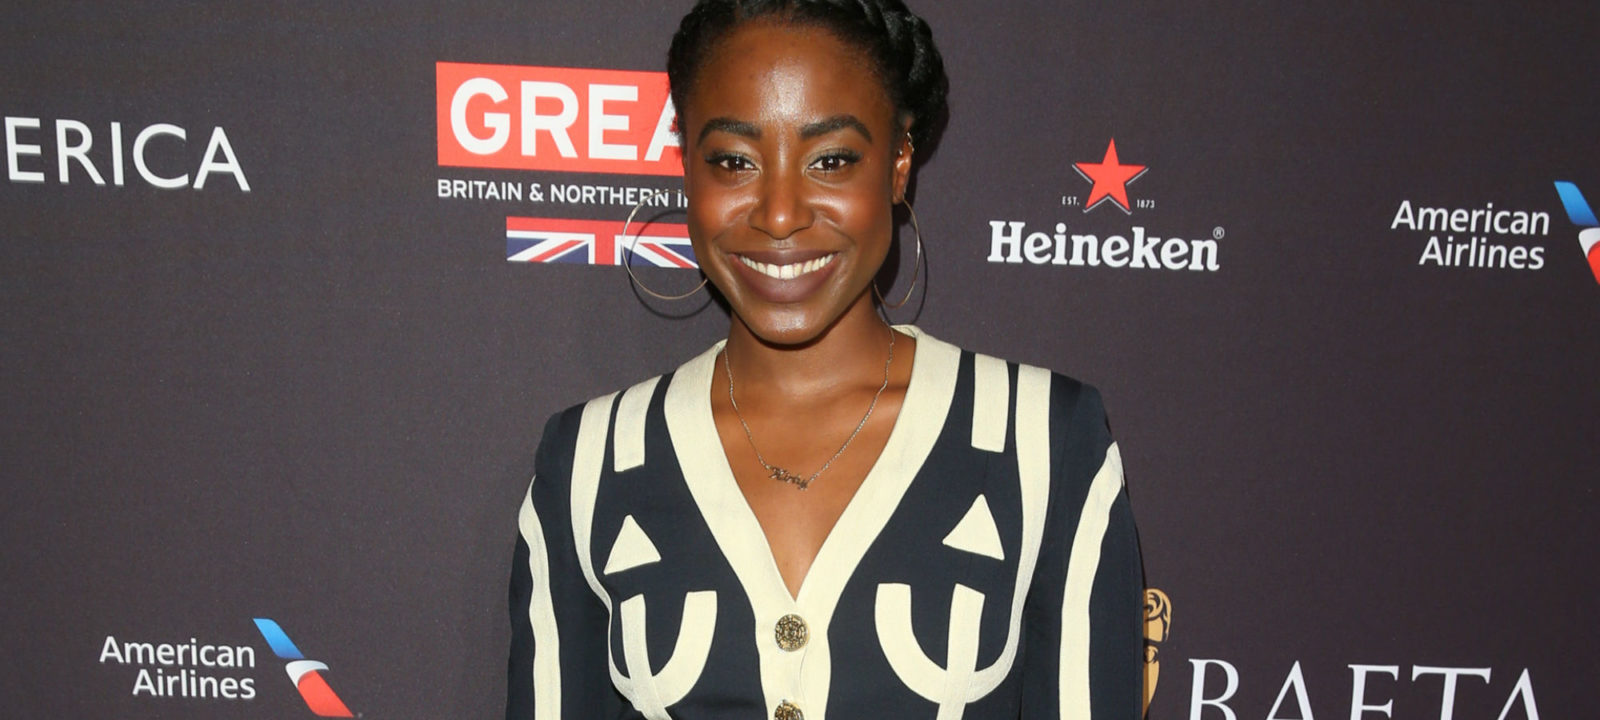 Kirby Howell-Baptiste